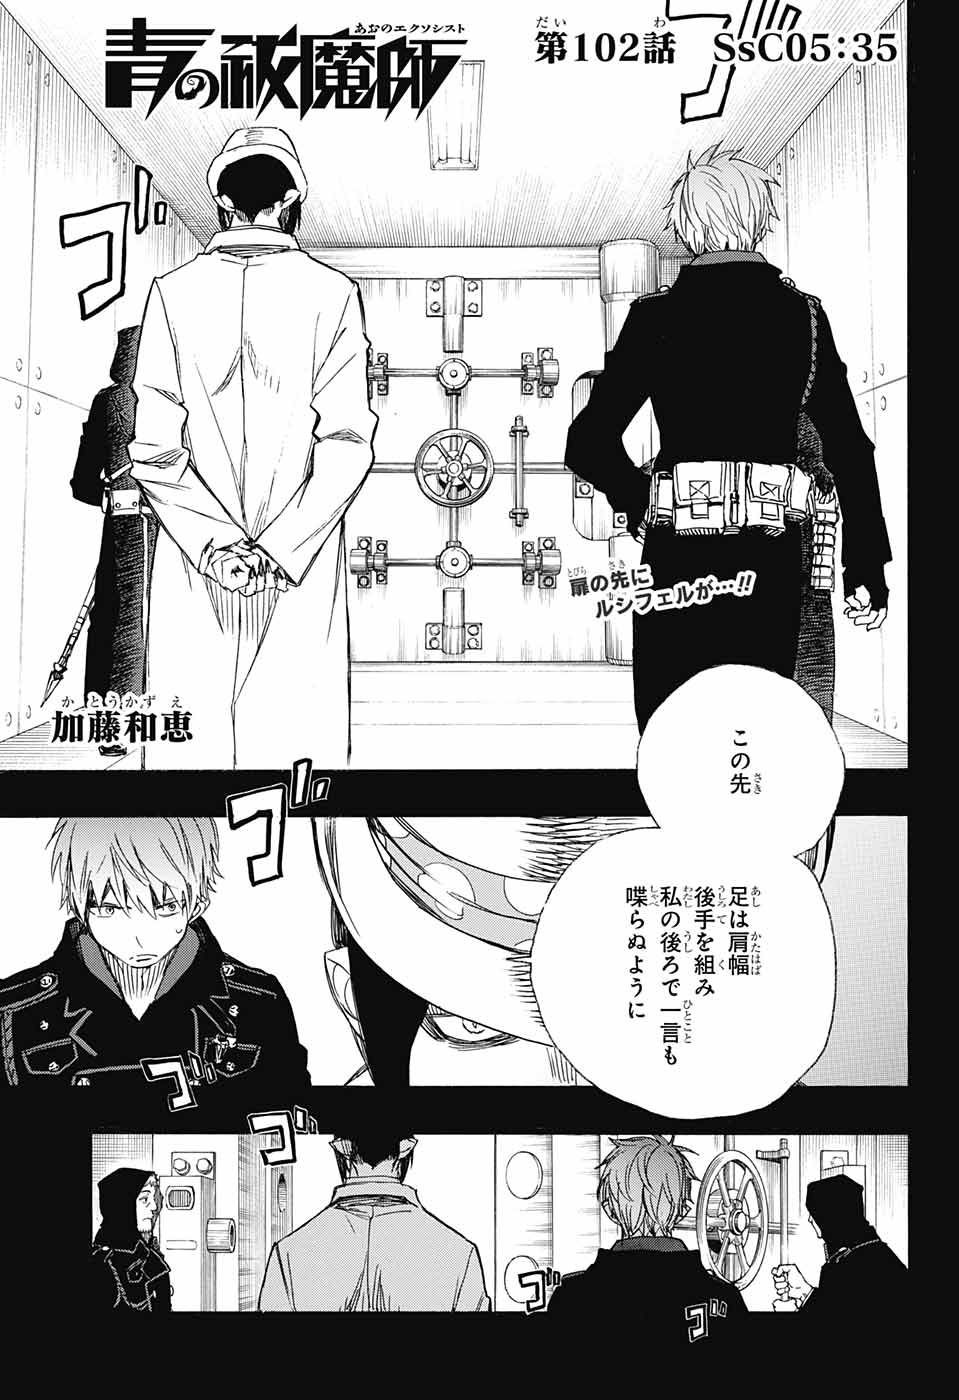 Ao_no_Exorcist Chapter 102 Page 1